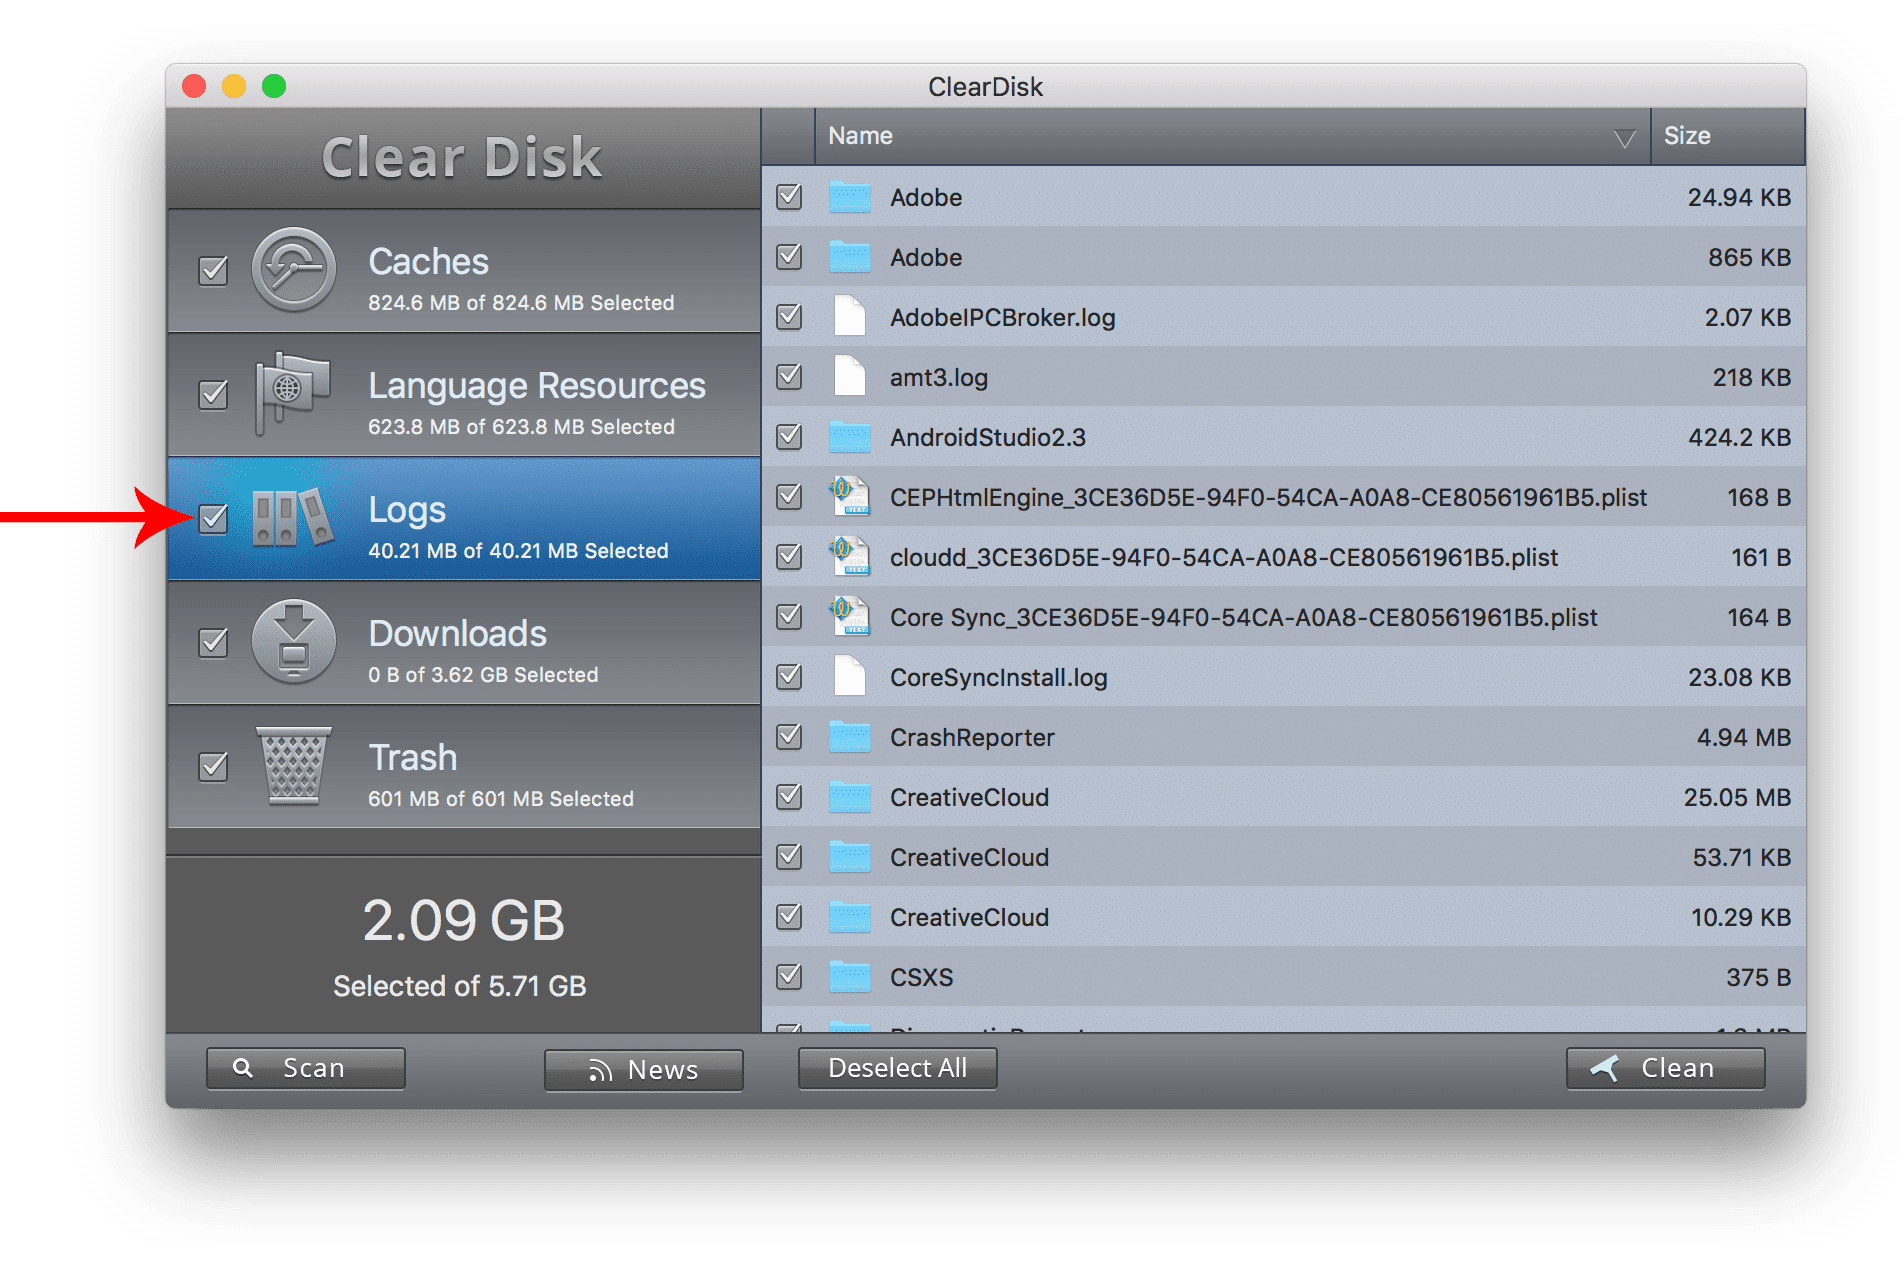 clear disk logs